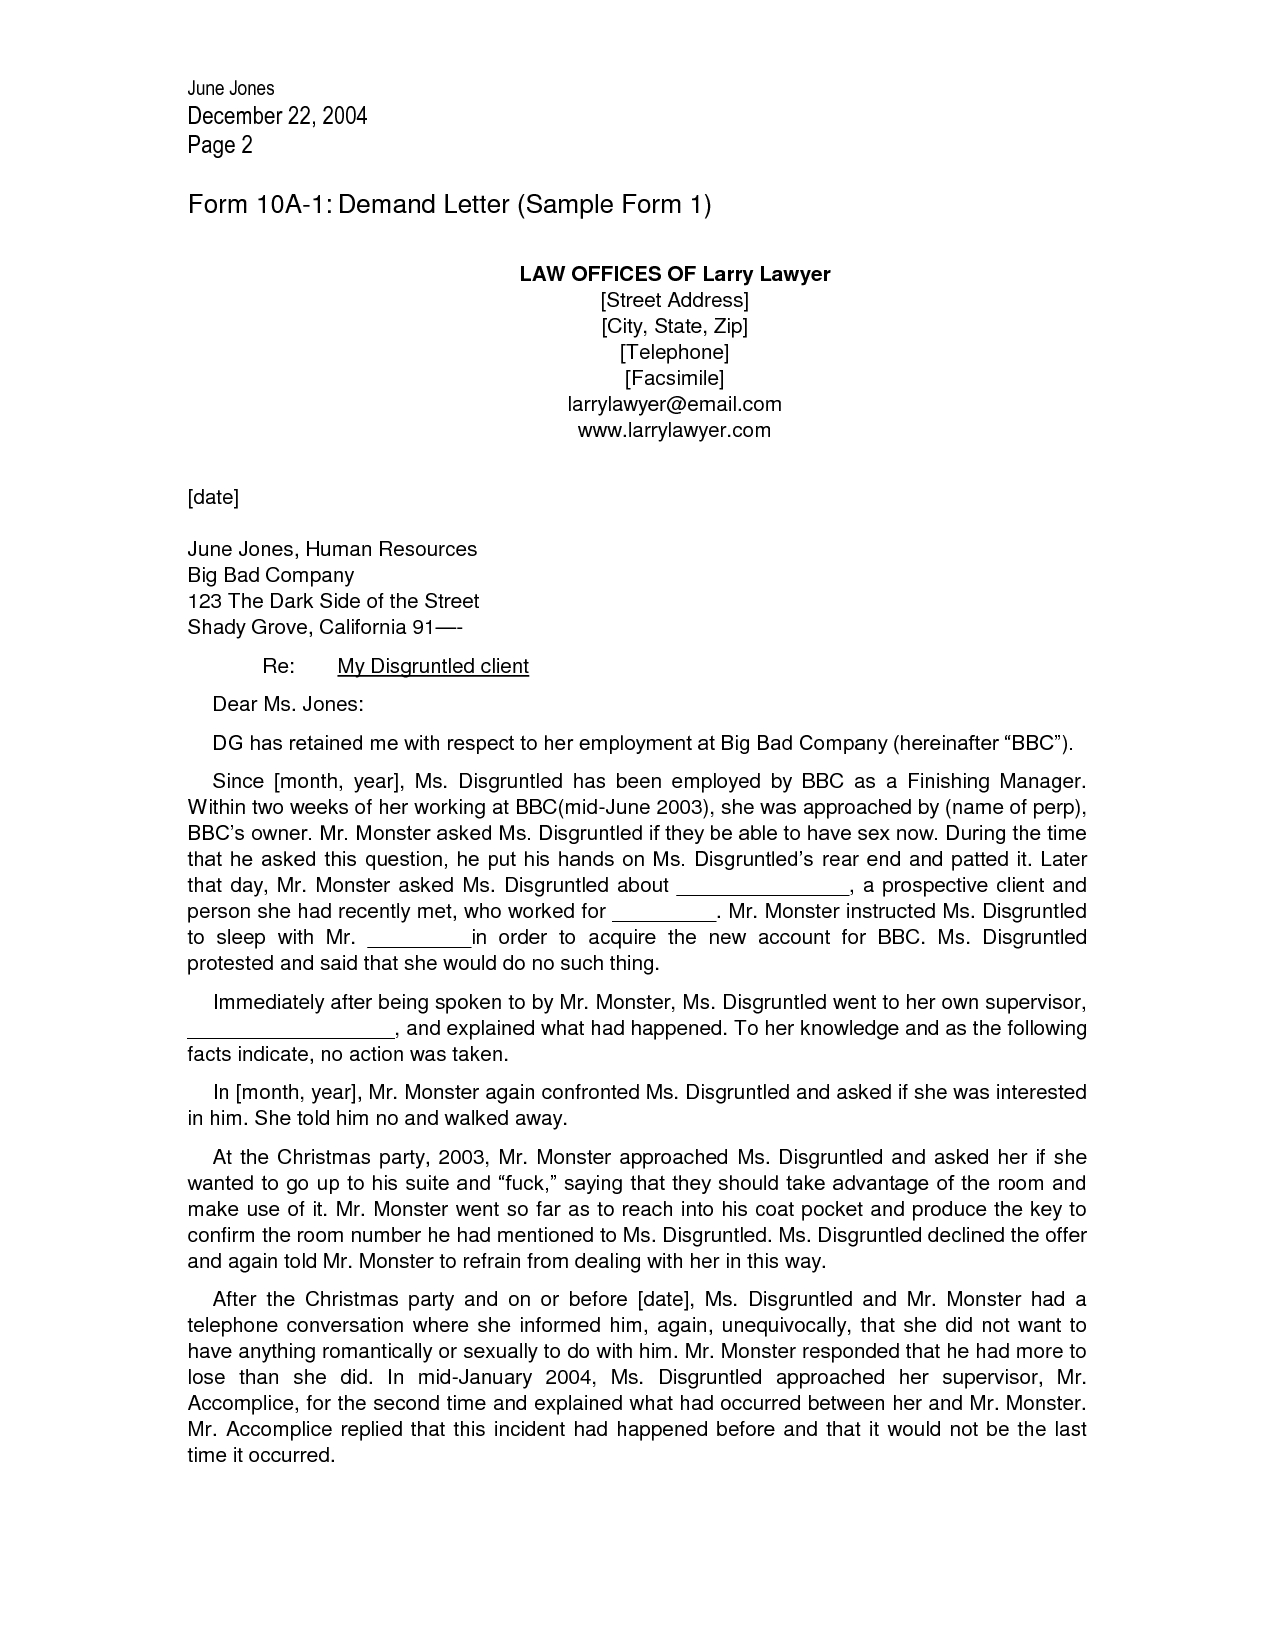 Law Firm Letter Template - Lovely Letter Outline Template